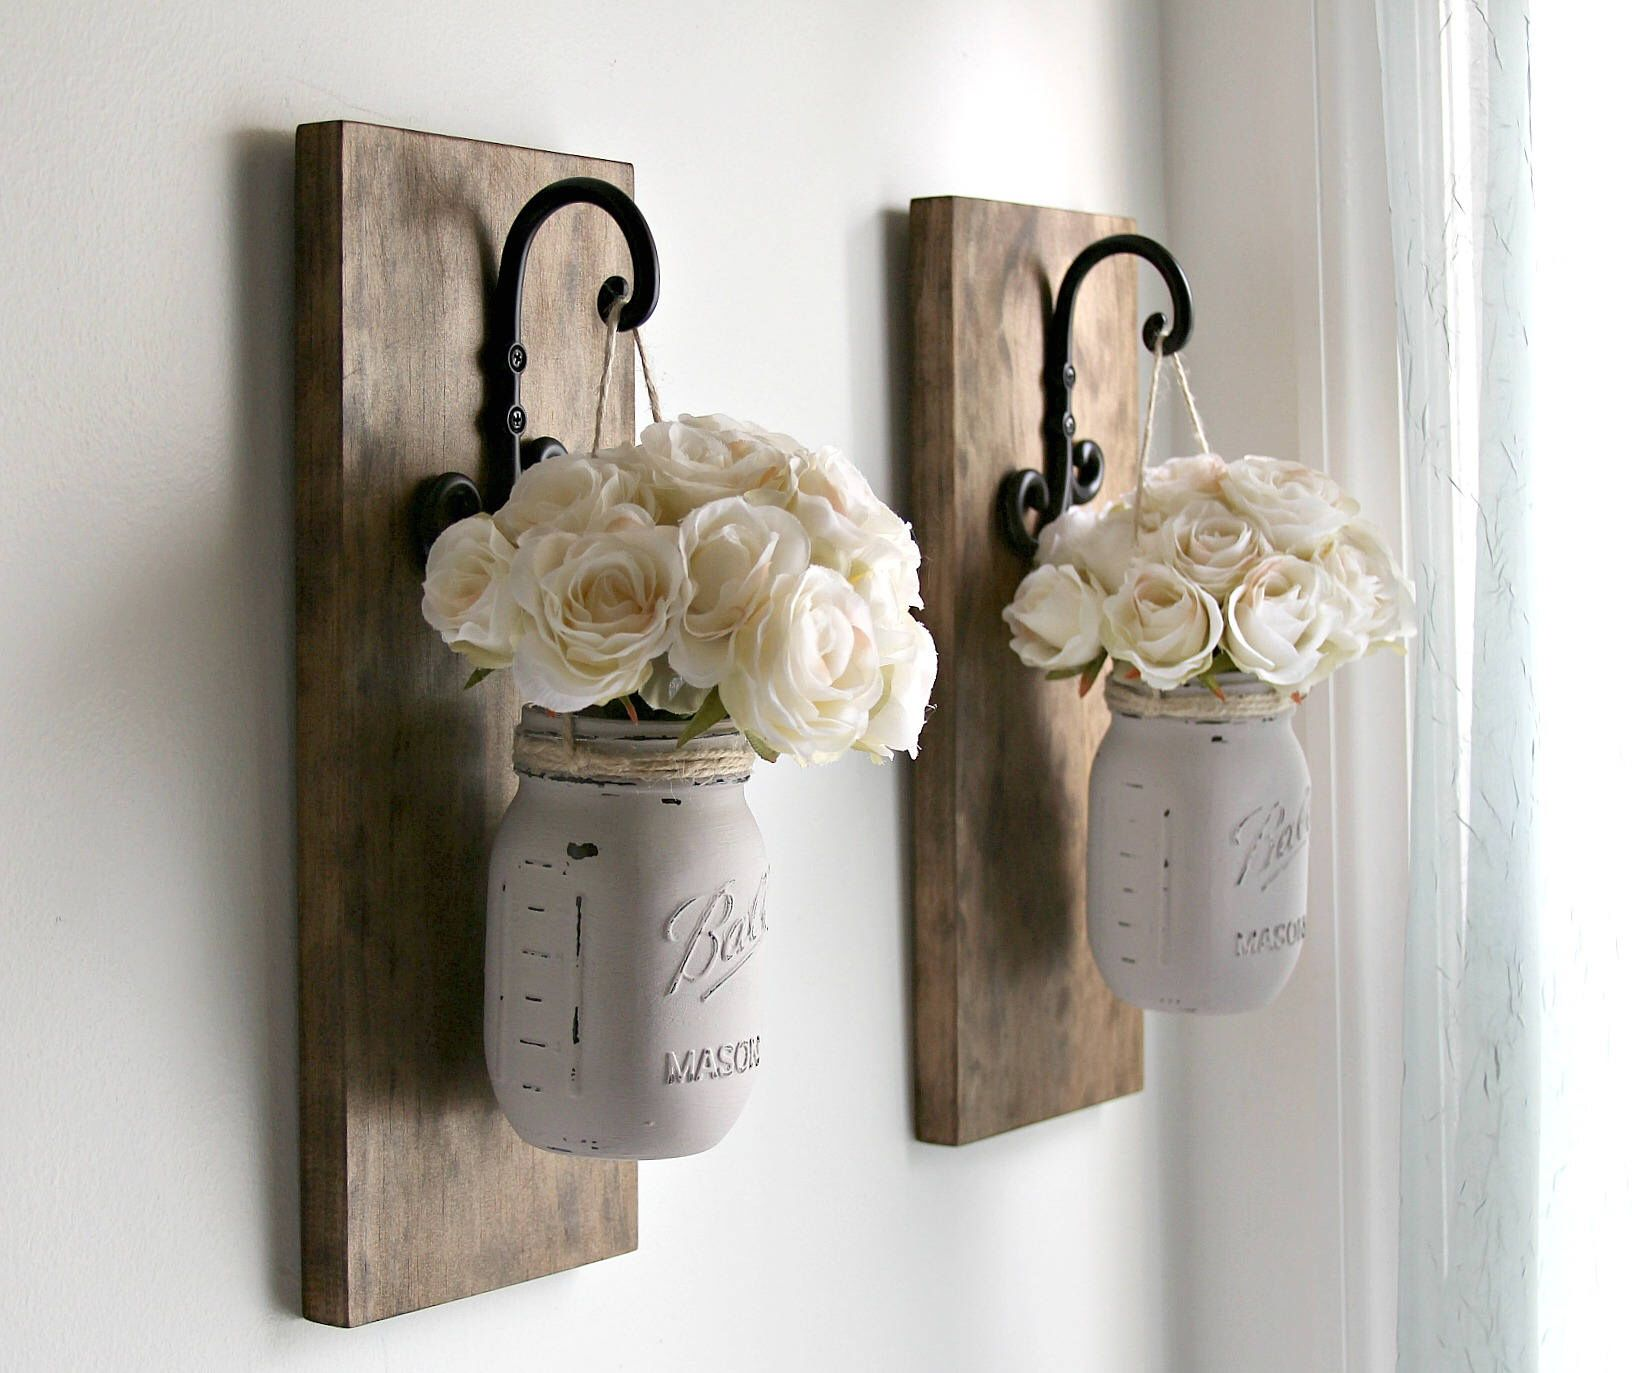 Rustic wall decor hangings